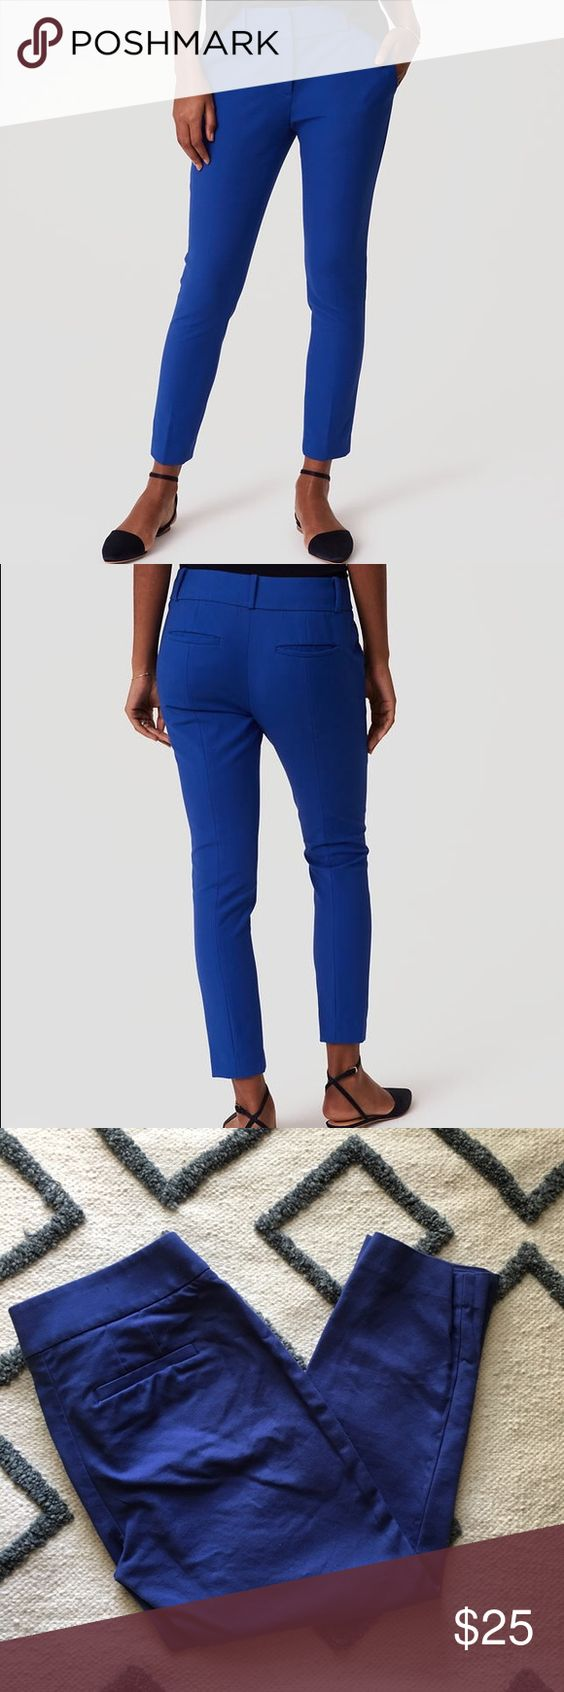 "Essential Skinny Ankle Pant in Julie Fit Like New ""Our skinny ankle pants are mid ride and slim throughout with a narrow leg and slight crop. Contoured to flatter the hips and thigh. Zip fly with hook and bar closure. Front slash pockets. Petite - 26"